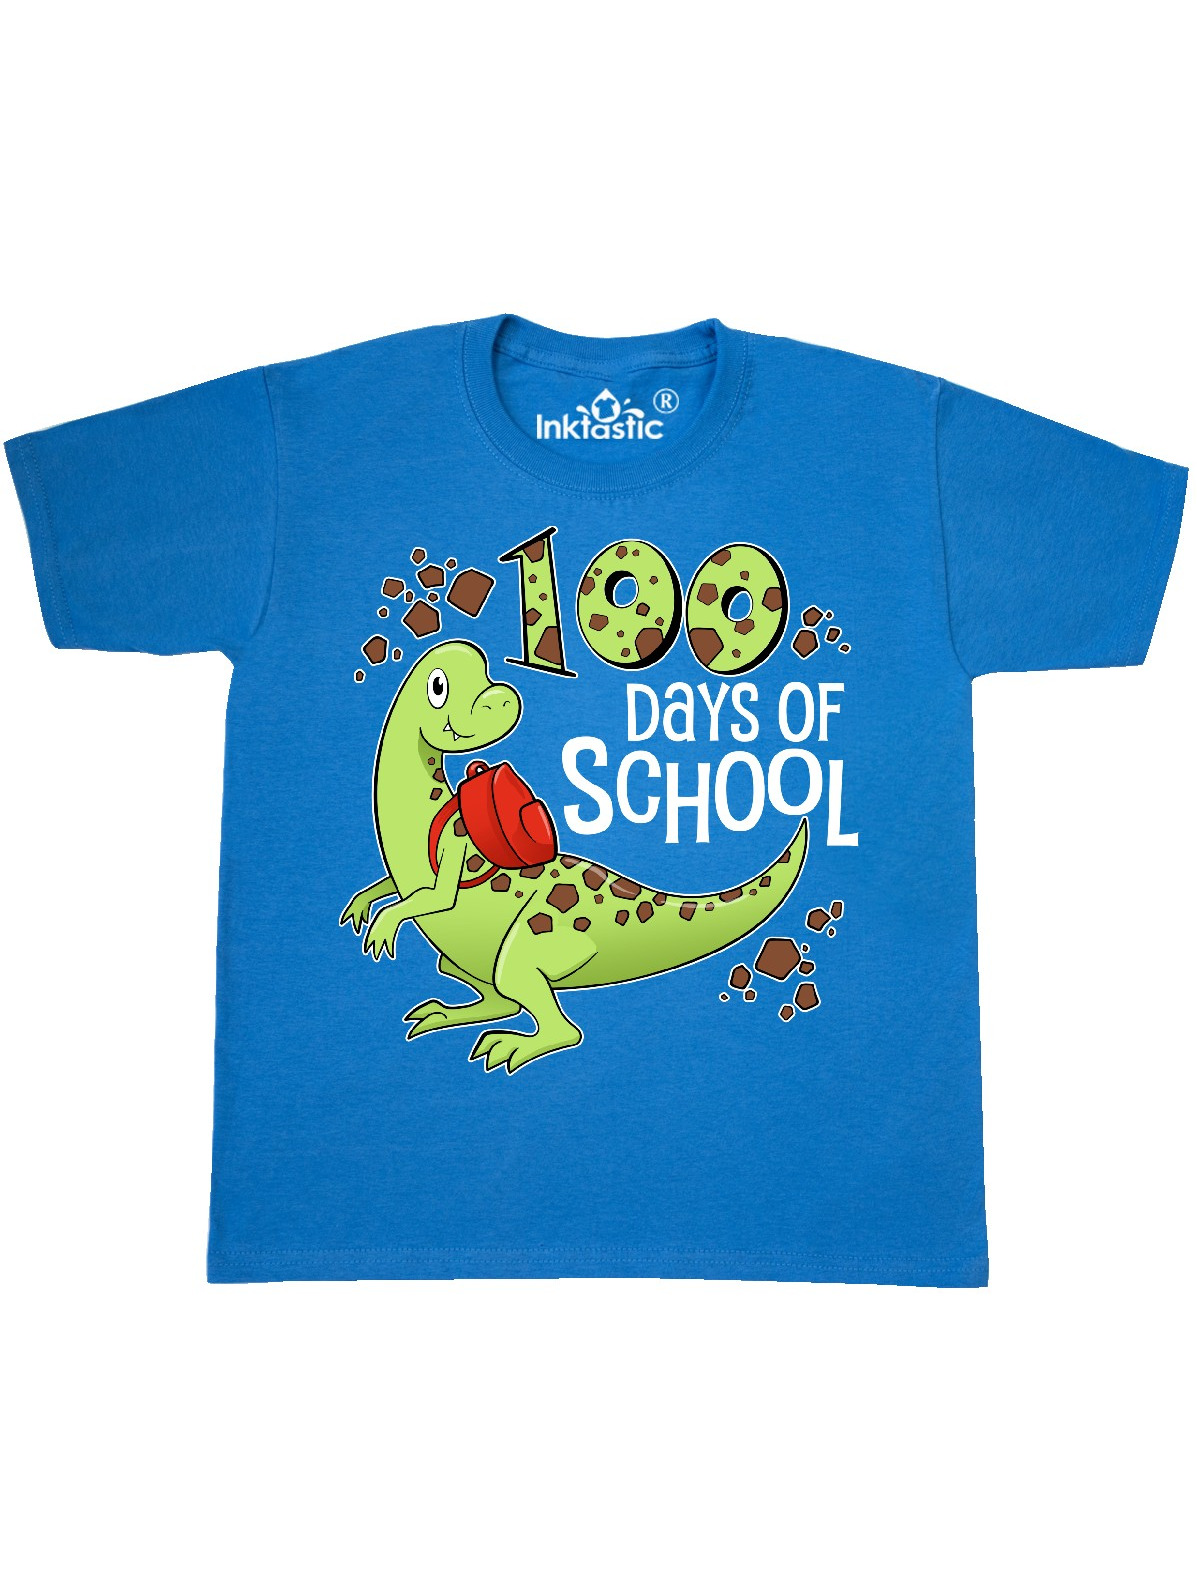 inktastic Rockin 100 Days with Sunglasses and Pencil Toddler T-Shirt